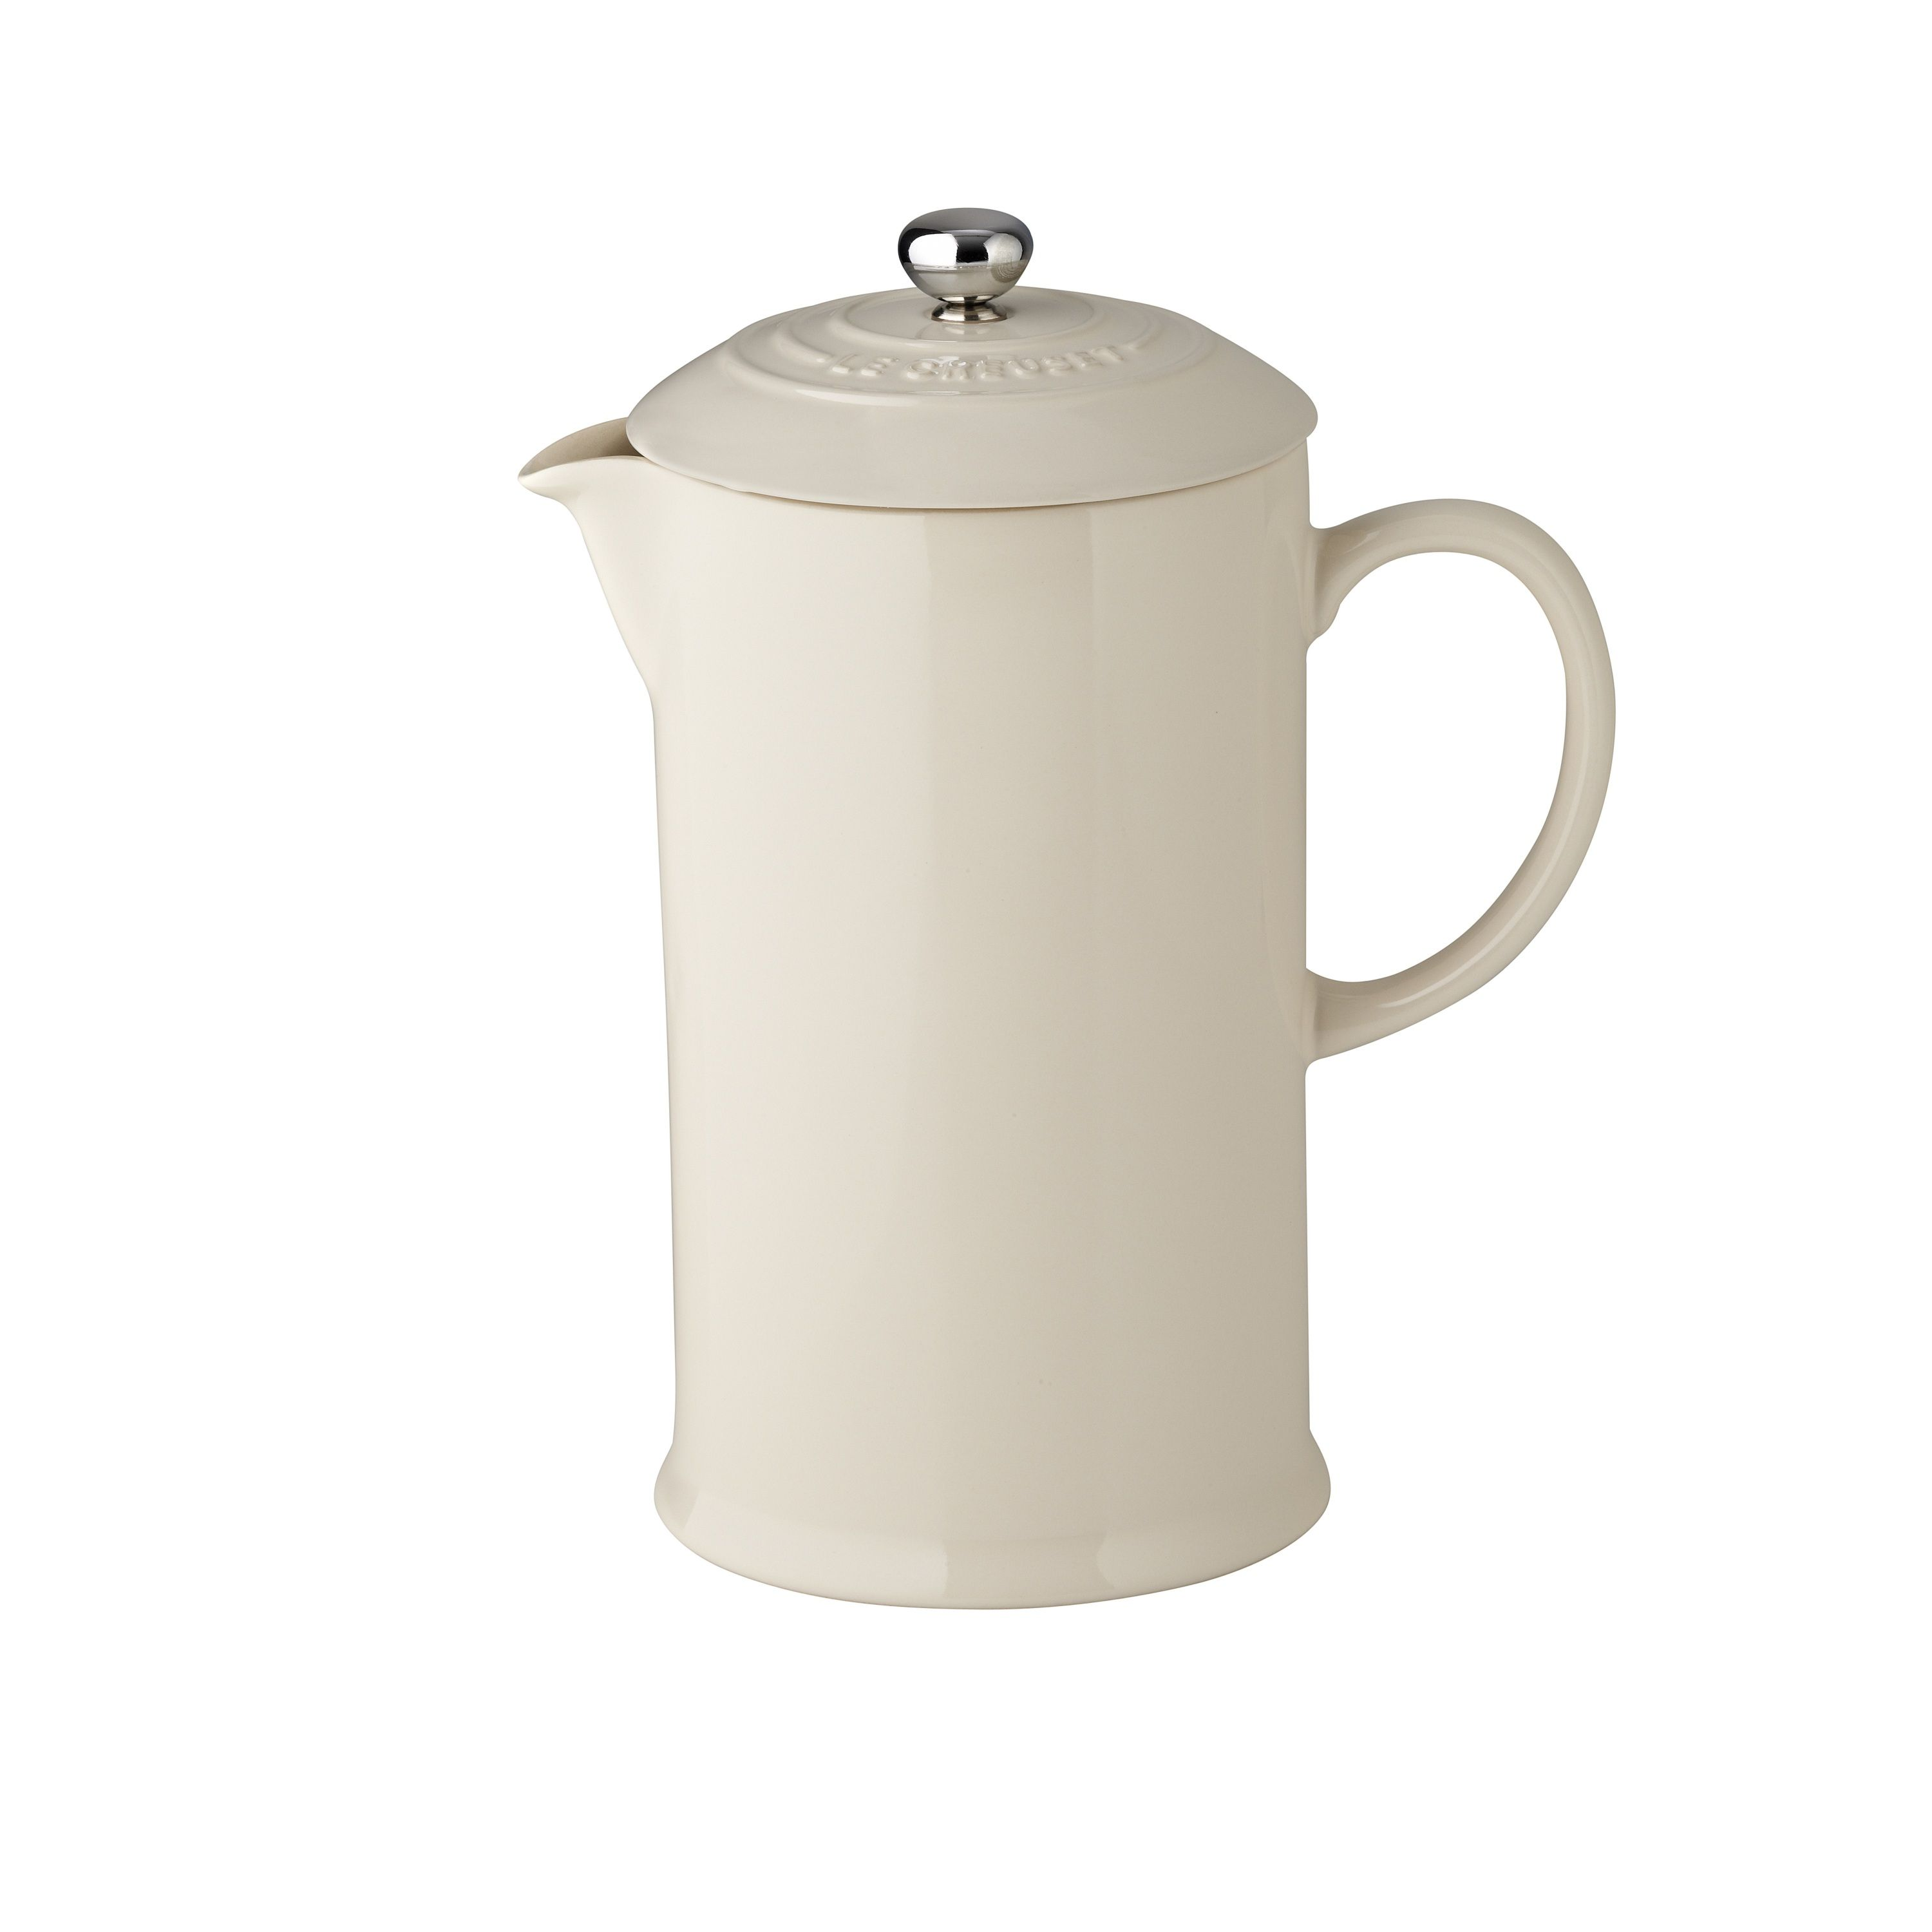 coffee brewed in a traditional french press always tastes good this